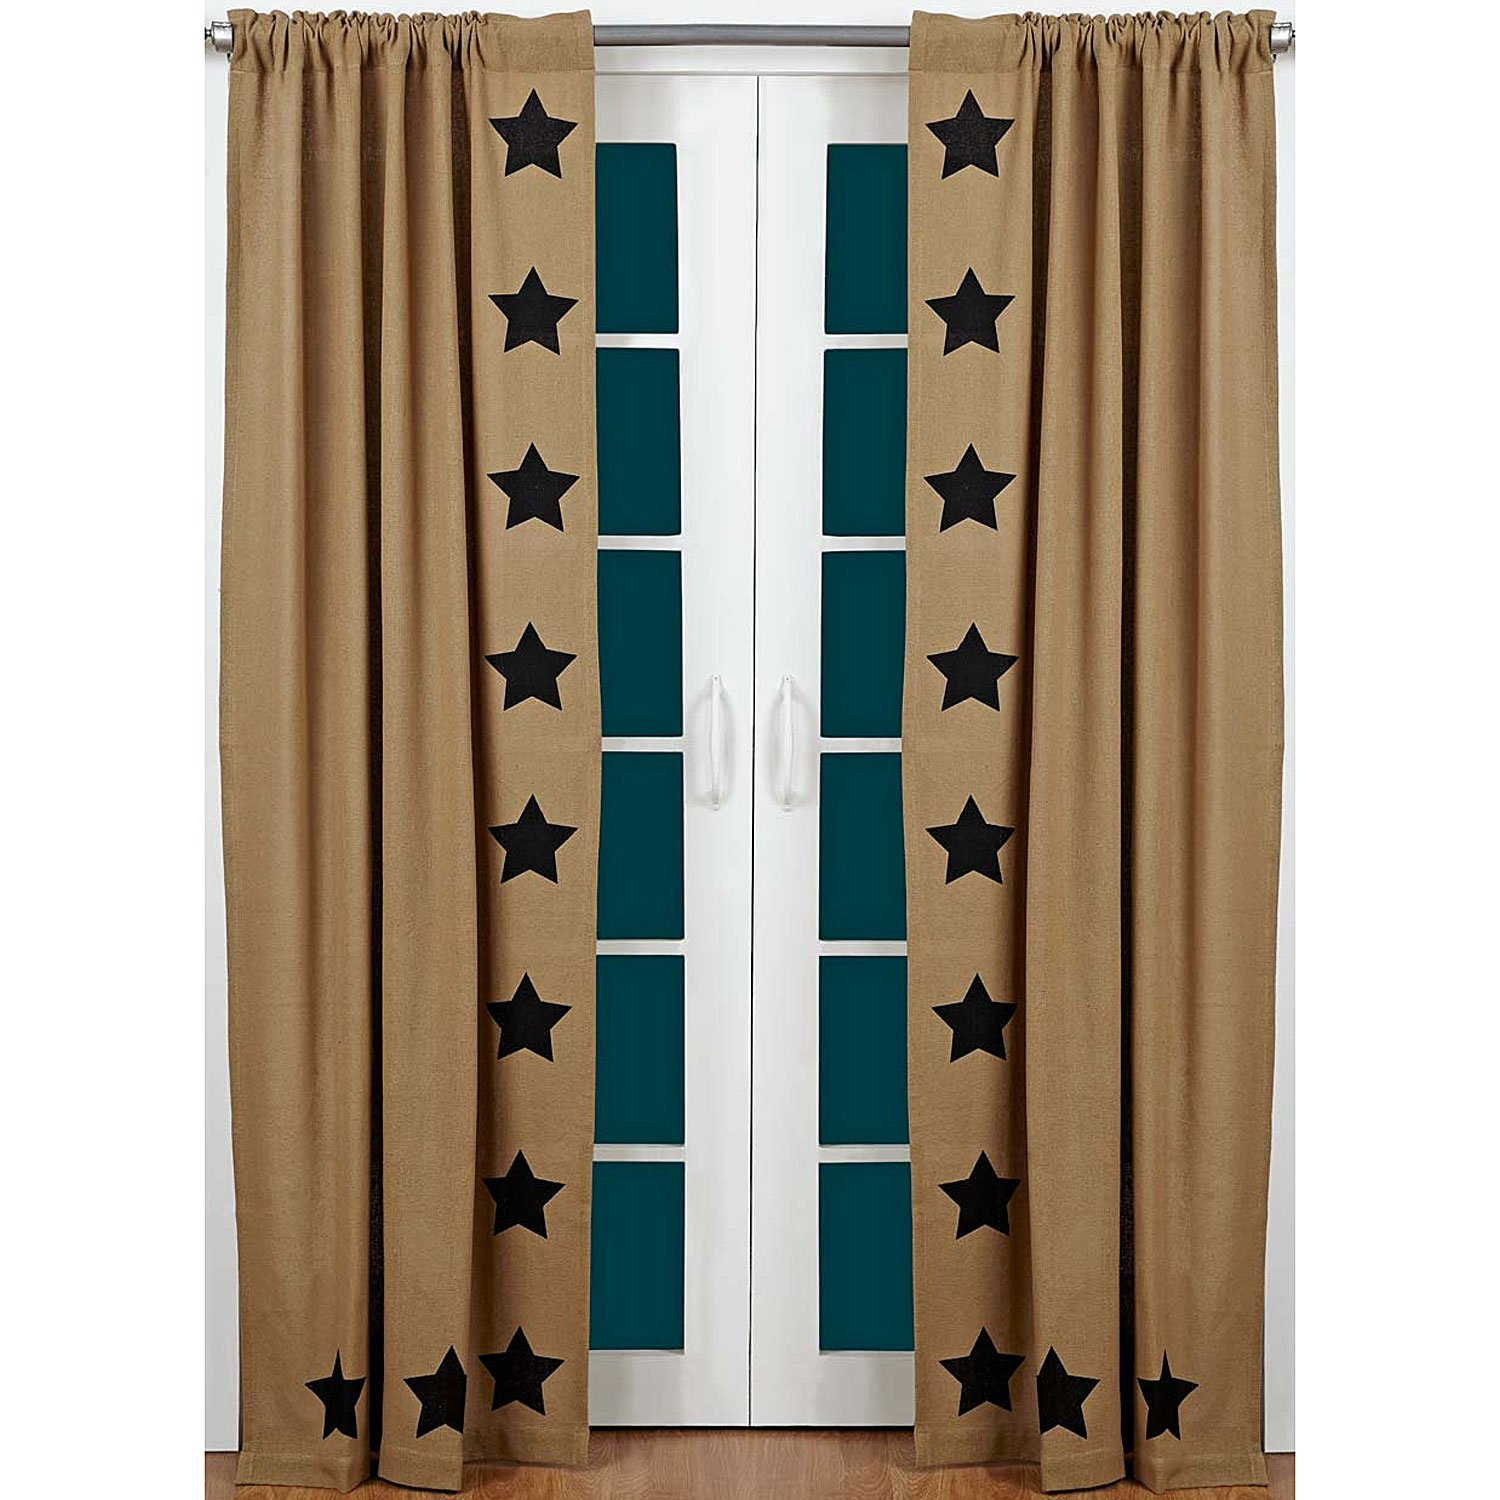 Burlap Natural Panel Black Stencil Stars